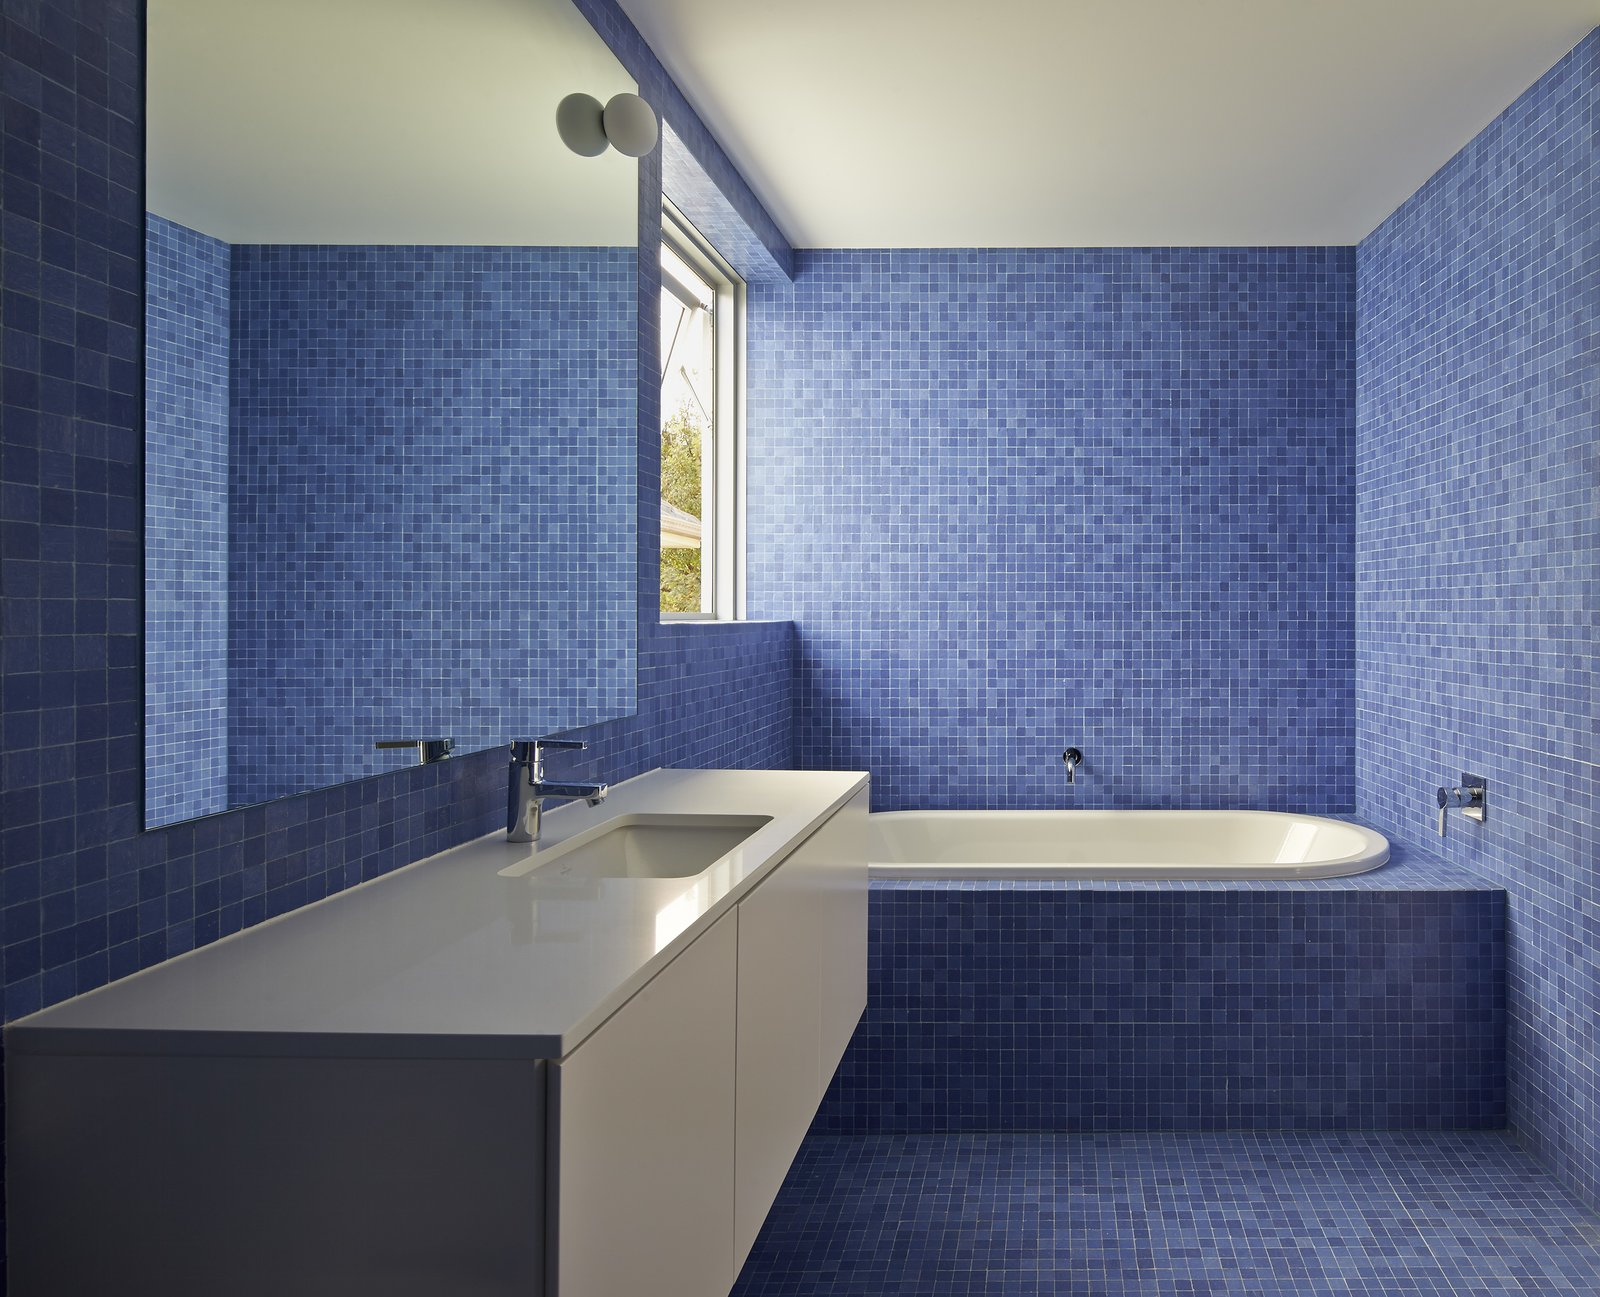 12 Creative Ways to Use Tile in Your Home - Dwell